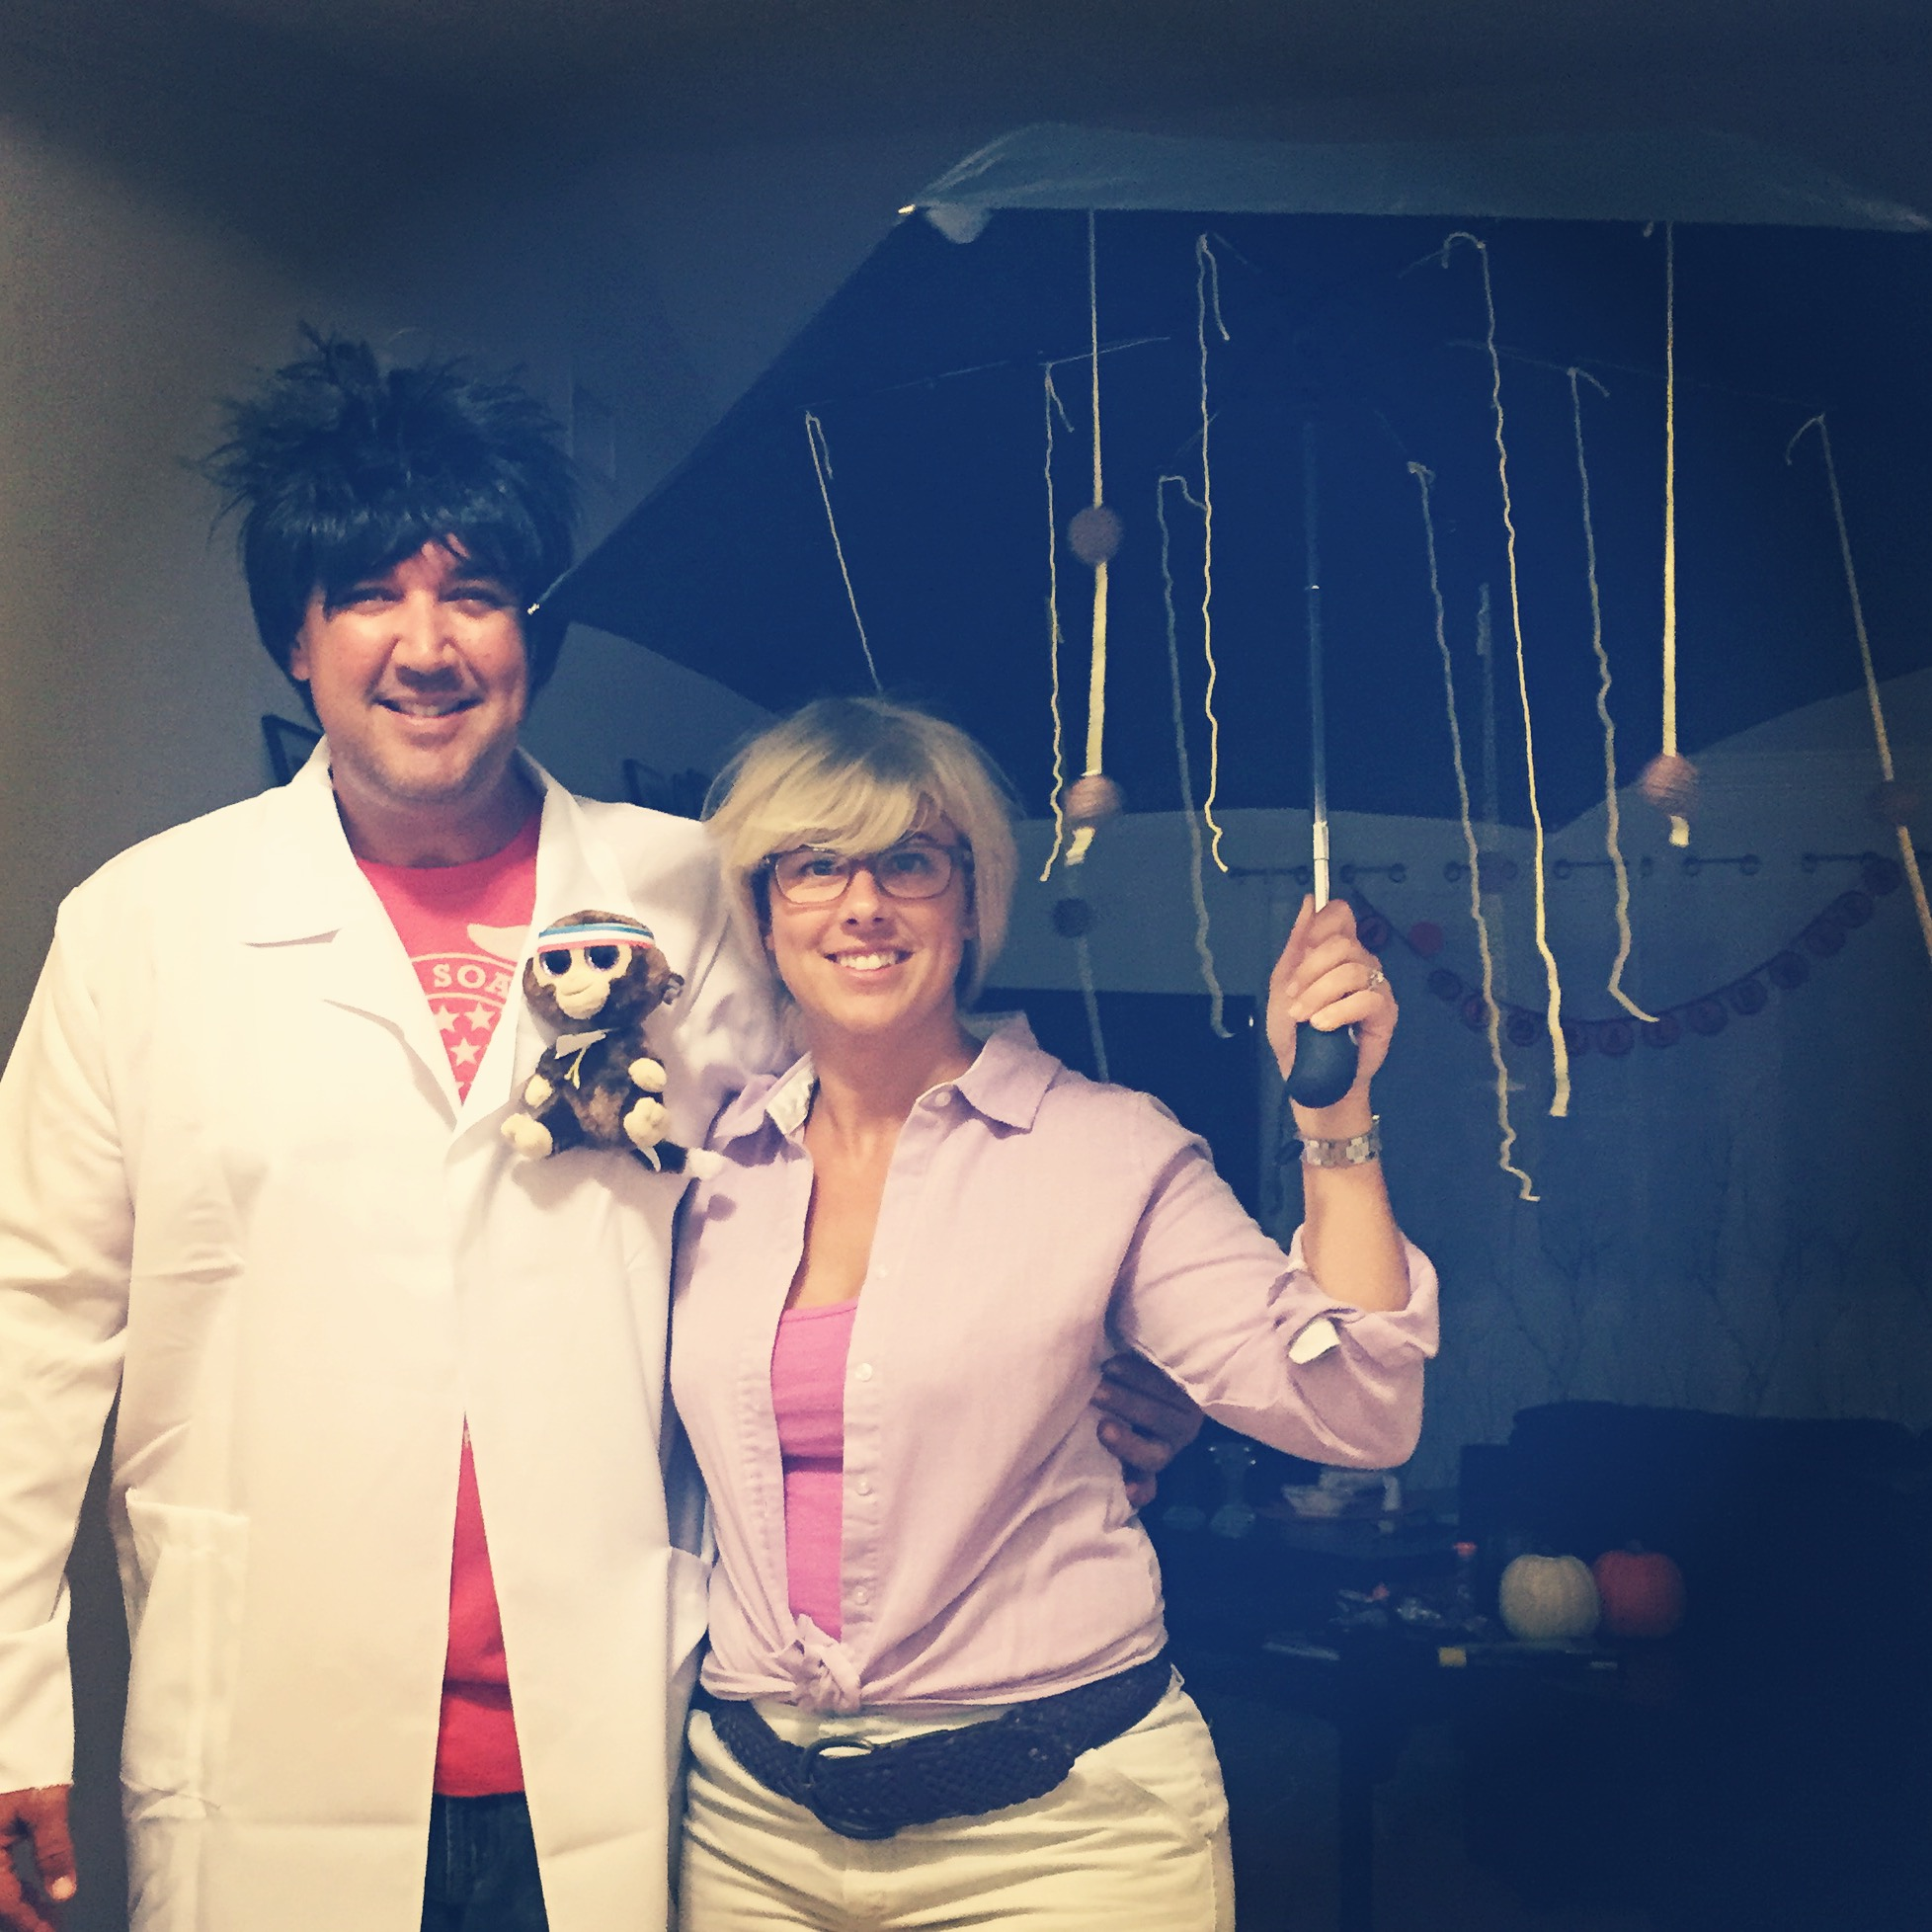 Can you guess who we are? (Hint....it's raining spaghetti & meatballs!)